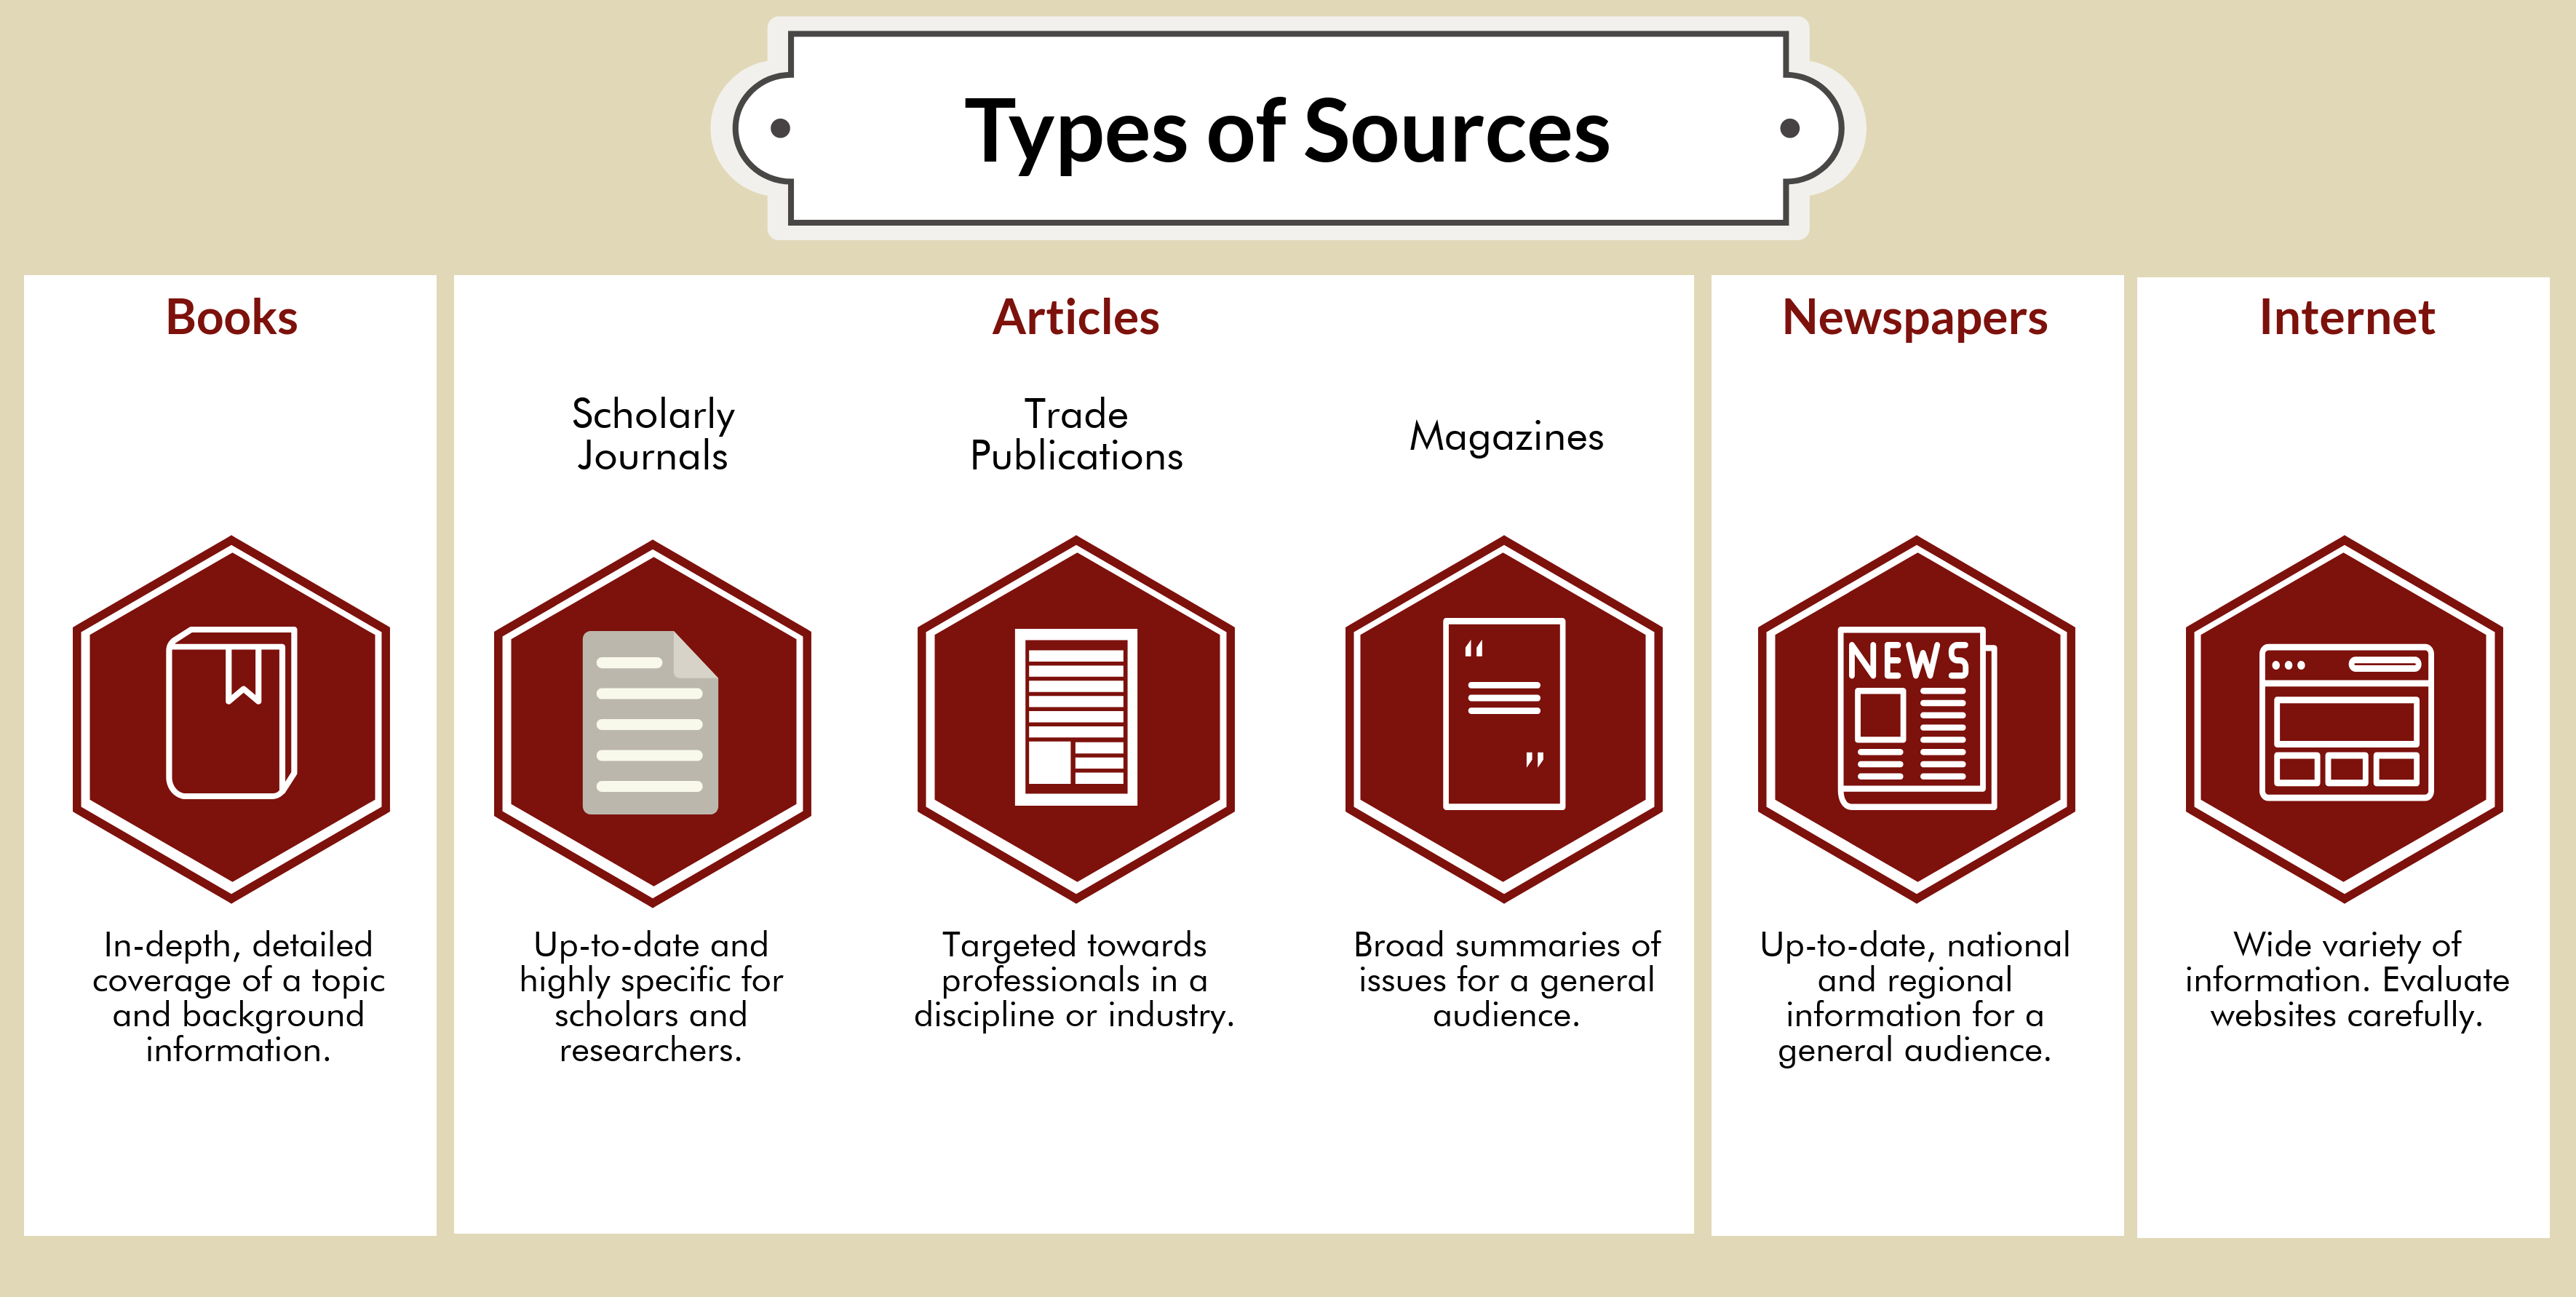 Infographic depicting types of sources. Books provide in-depth, detailed coverage of a topic and background information. Scholarly Journals articles provide up-to-date and highly specific information for scholars and researchers. Trade Publications publish articles targeted towards professionals in a discipline or industry. Magazines publish articles giving broad summaries of issues for a general audience. Newspaper articles give up-to-date, regional and national information for a general audience. The internet provides a wide variety of information that requires careful evaluation.